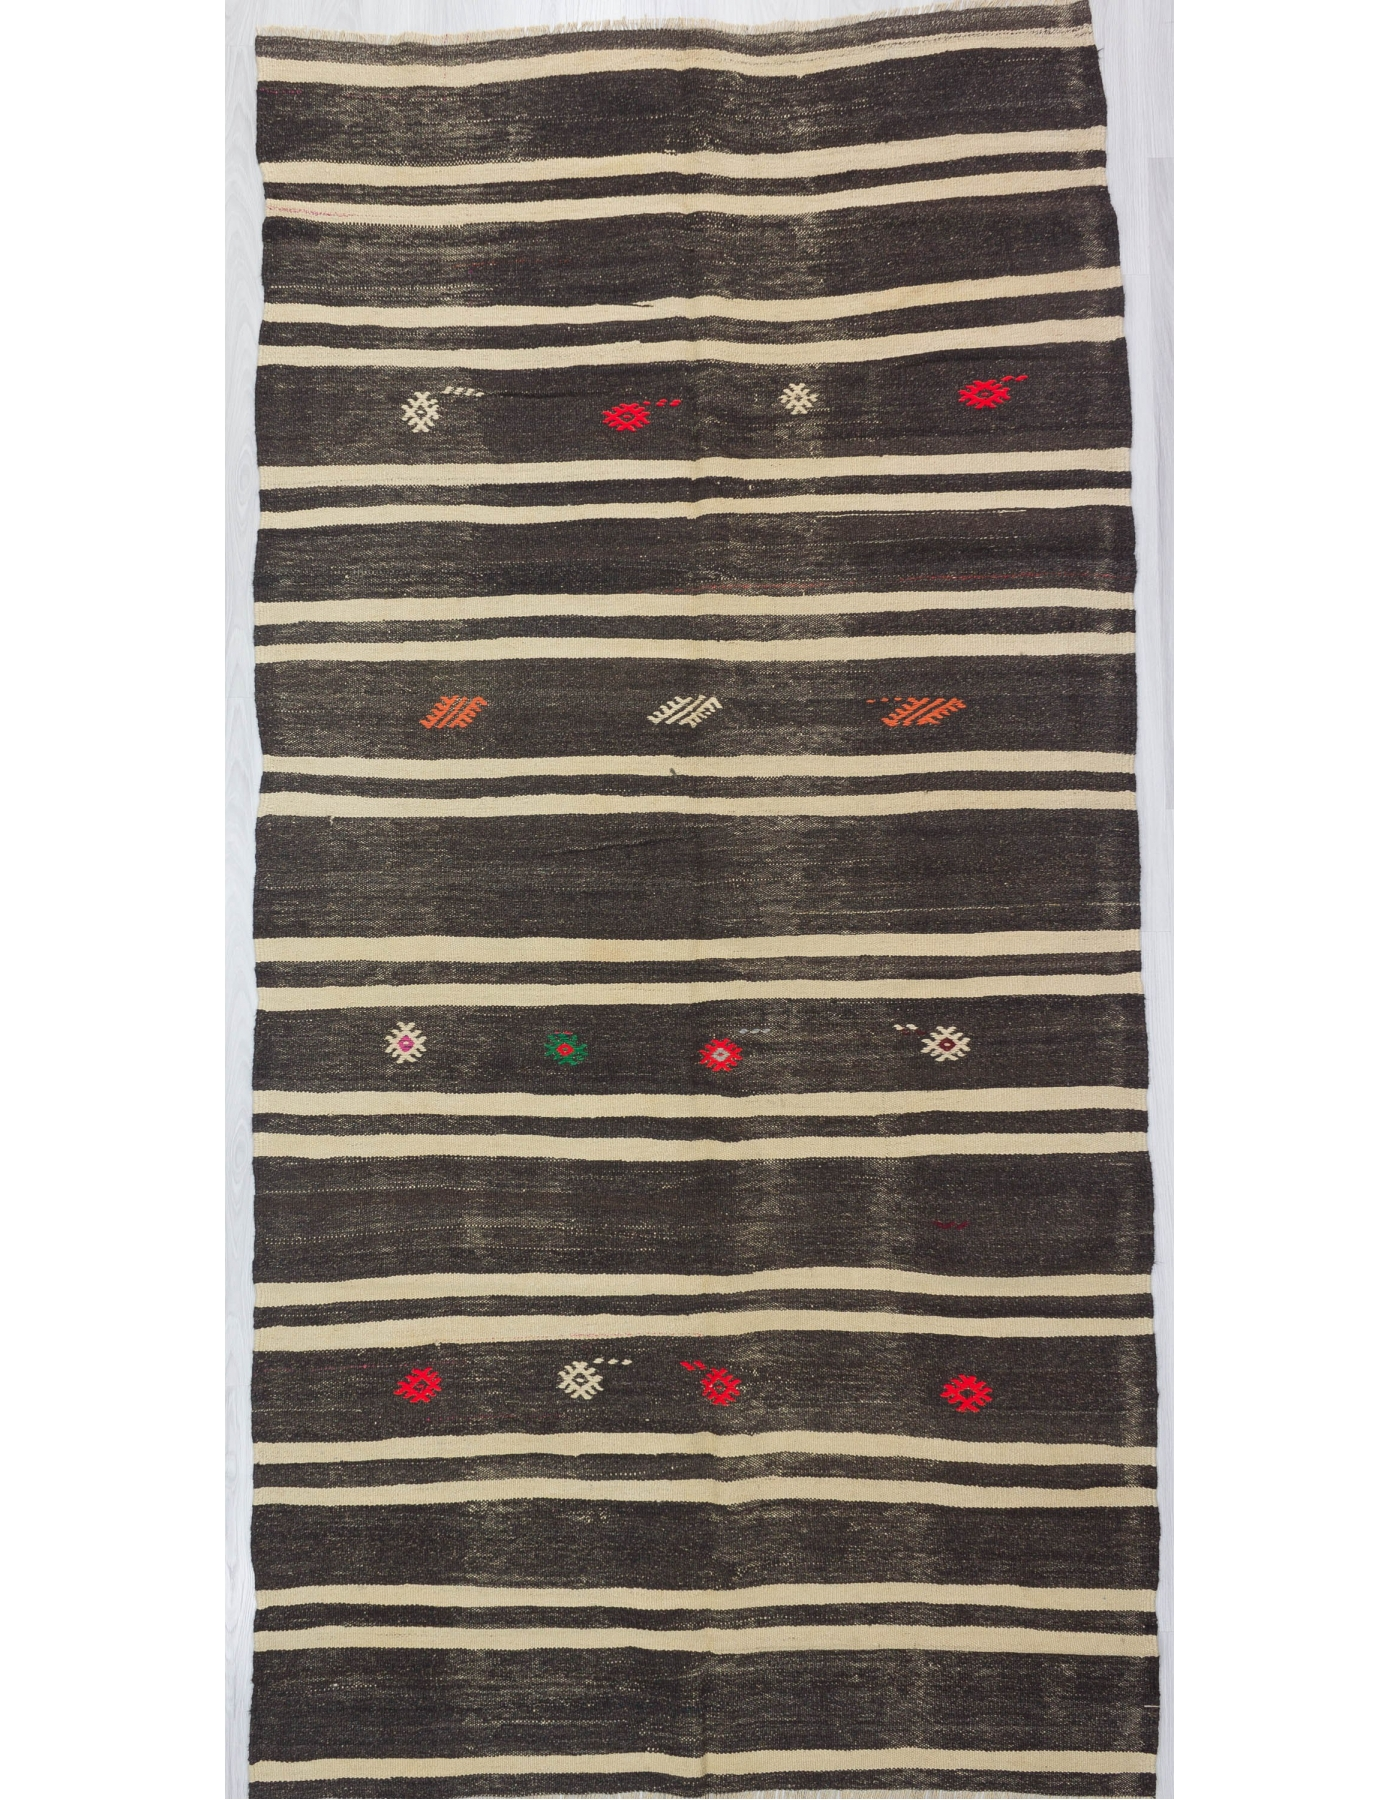 White Striped Vİntage Turkish Kilim Rug